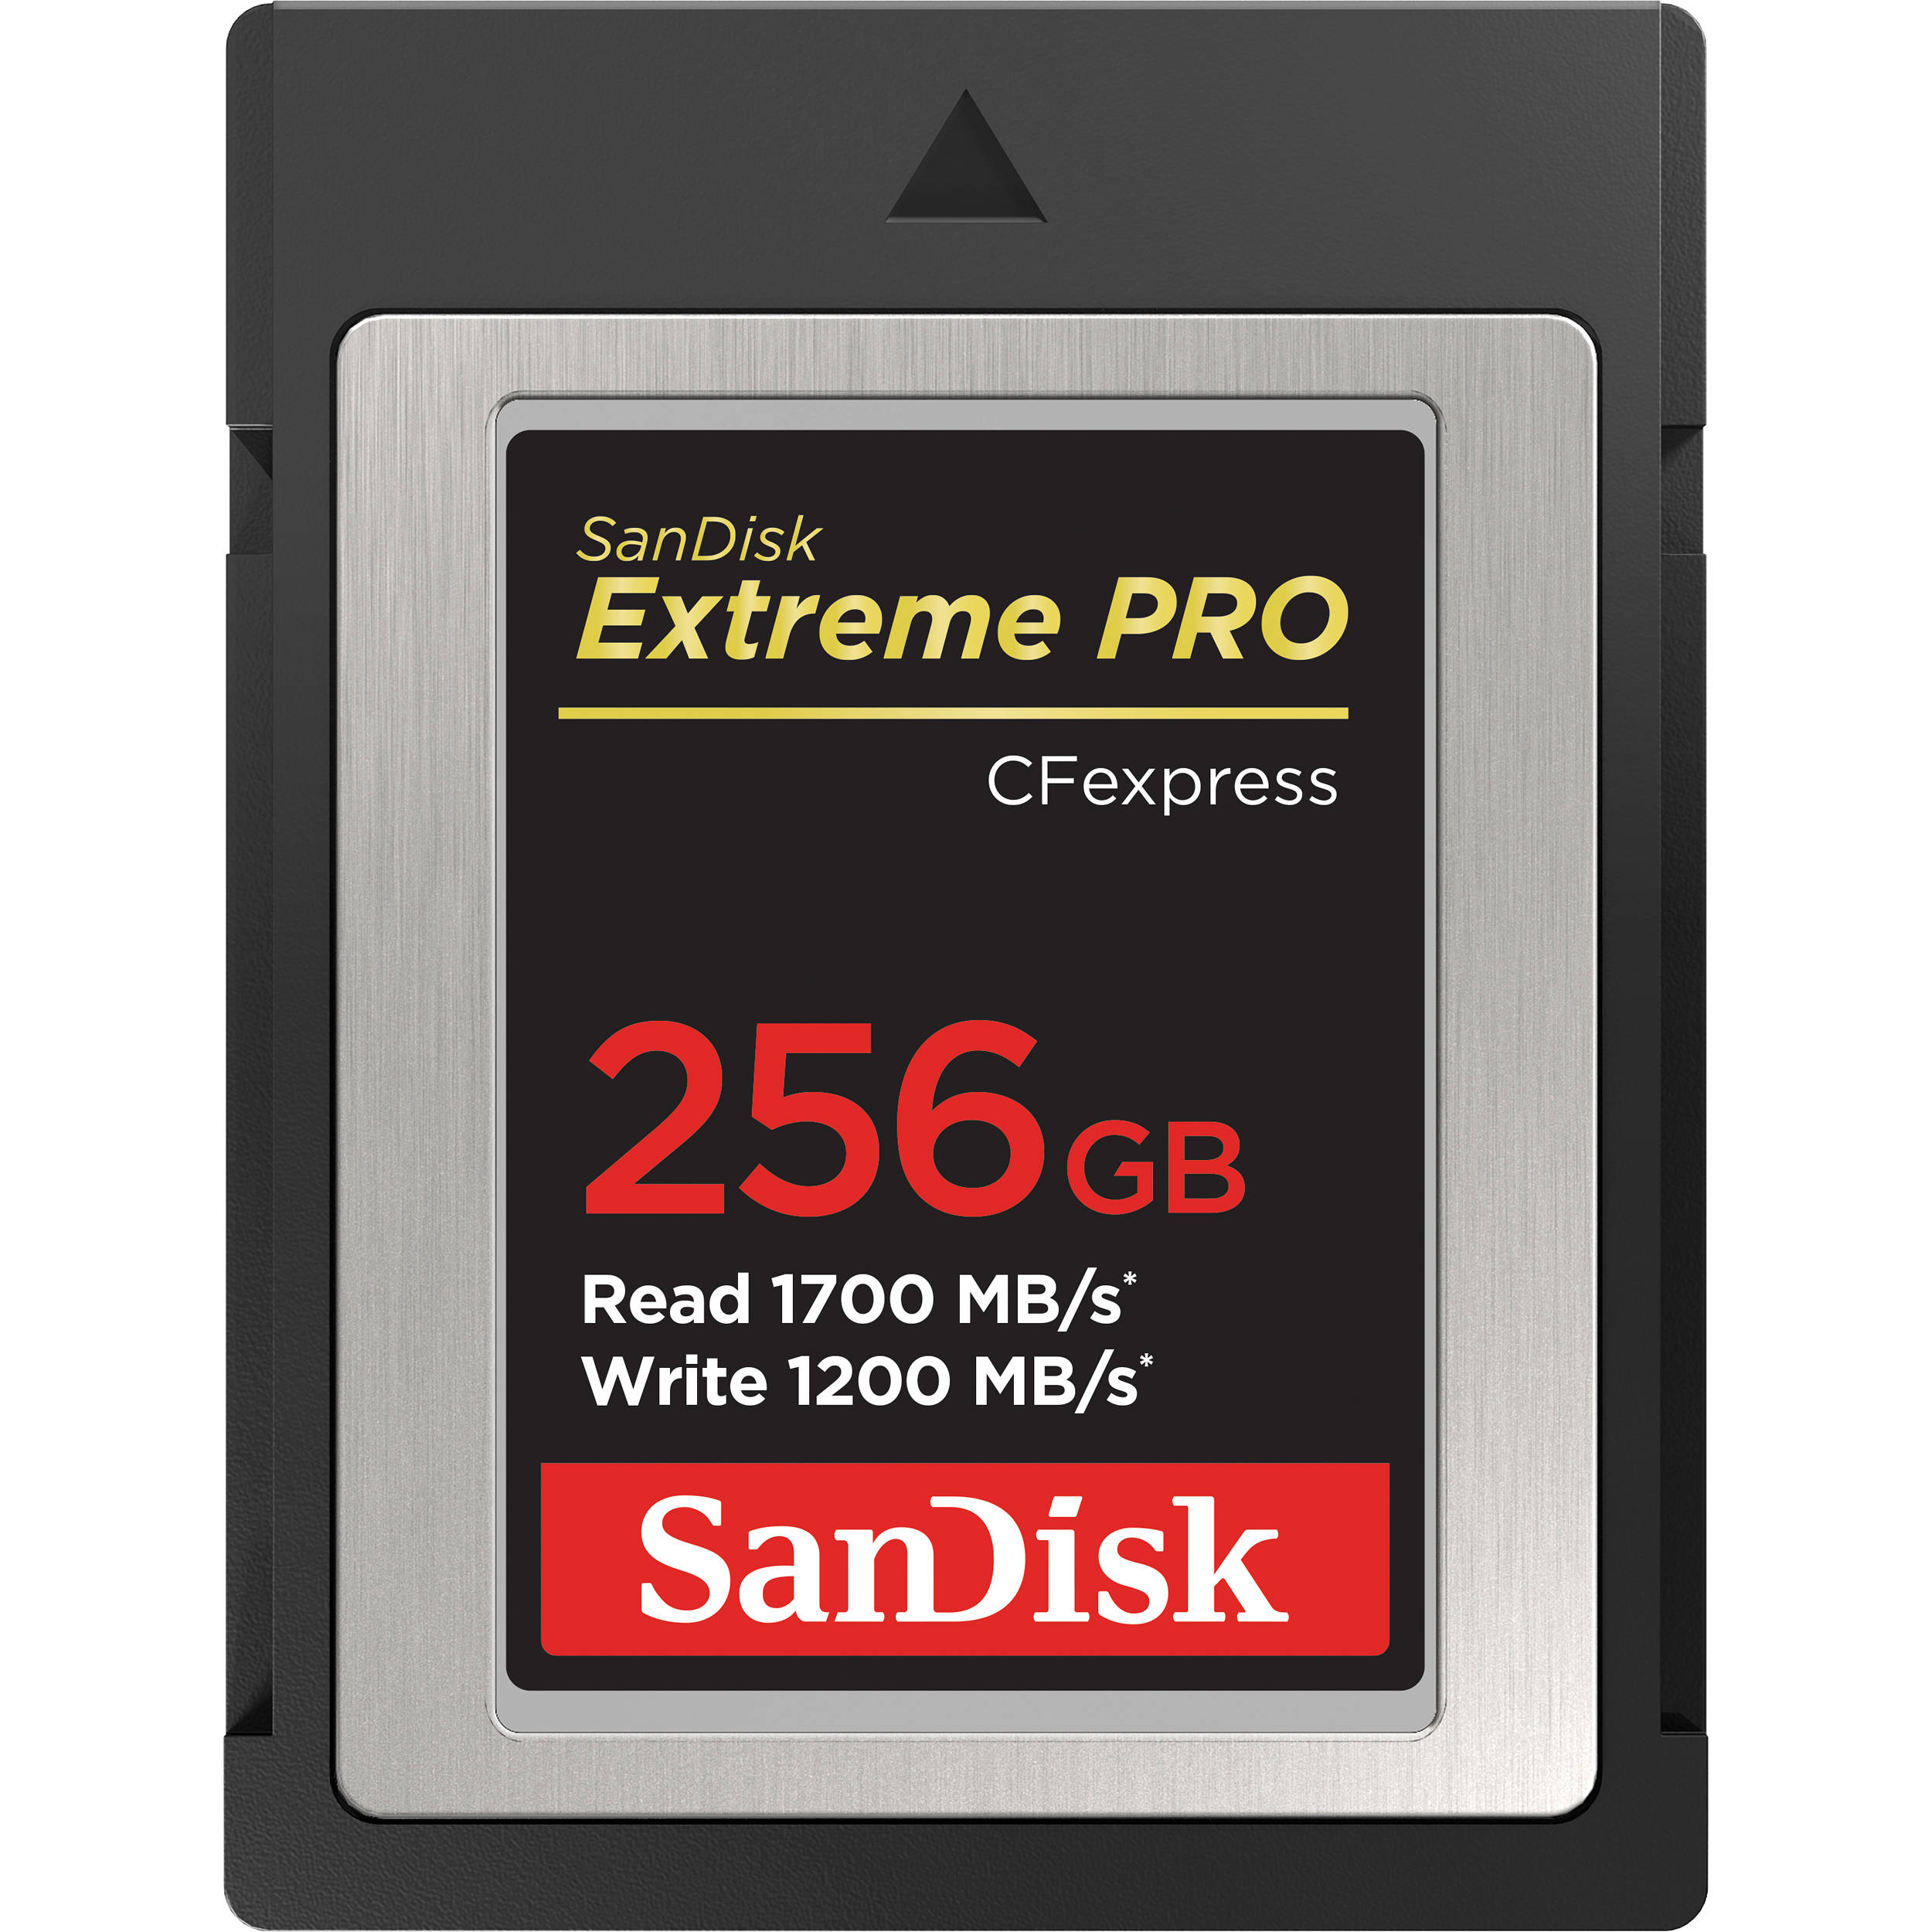 Hot Deal: $50 Off on SanDisk 256GB Extreme PRO CFexpress Card at B&H